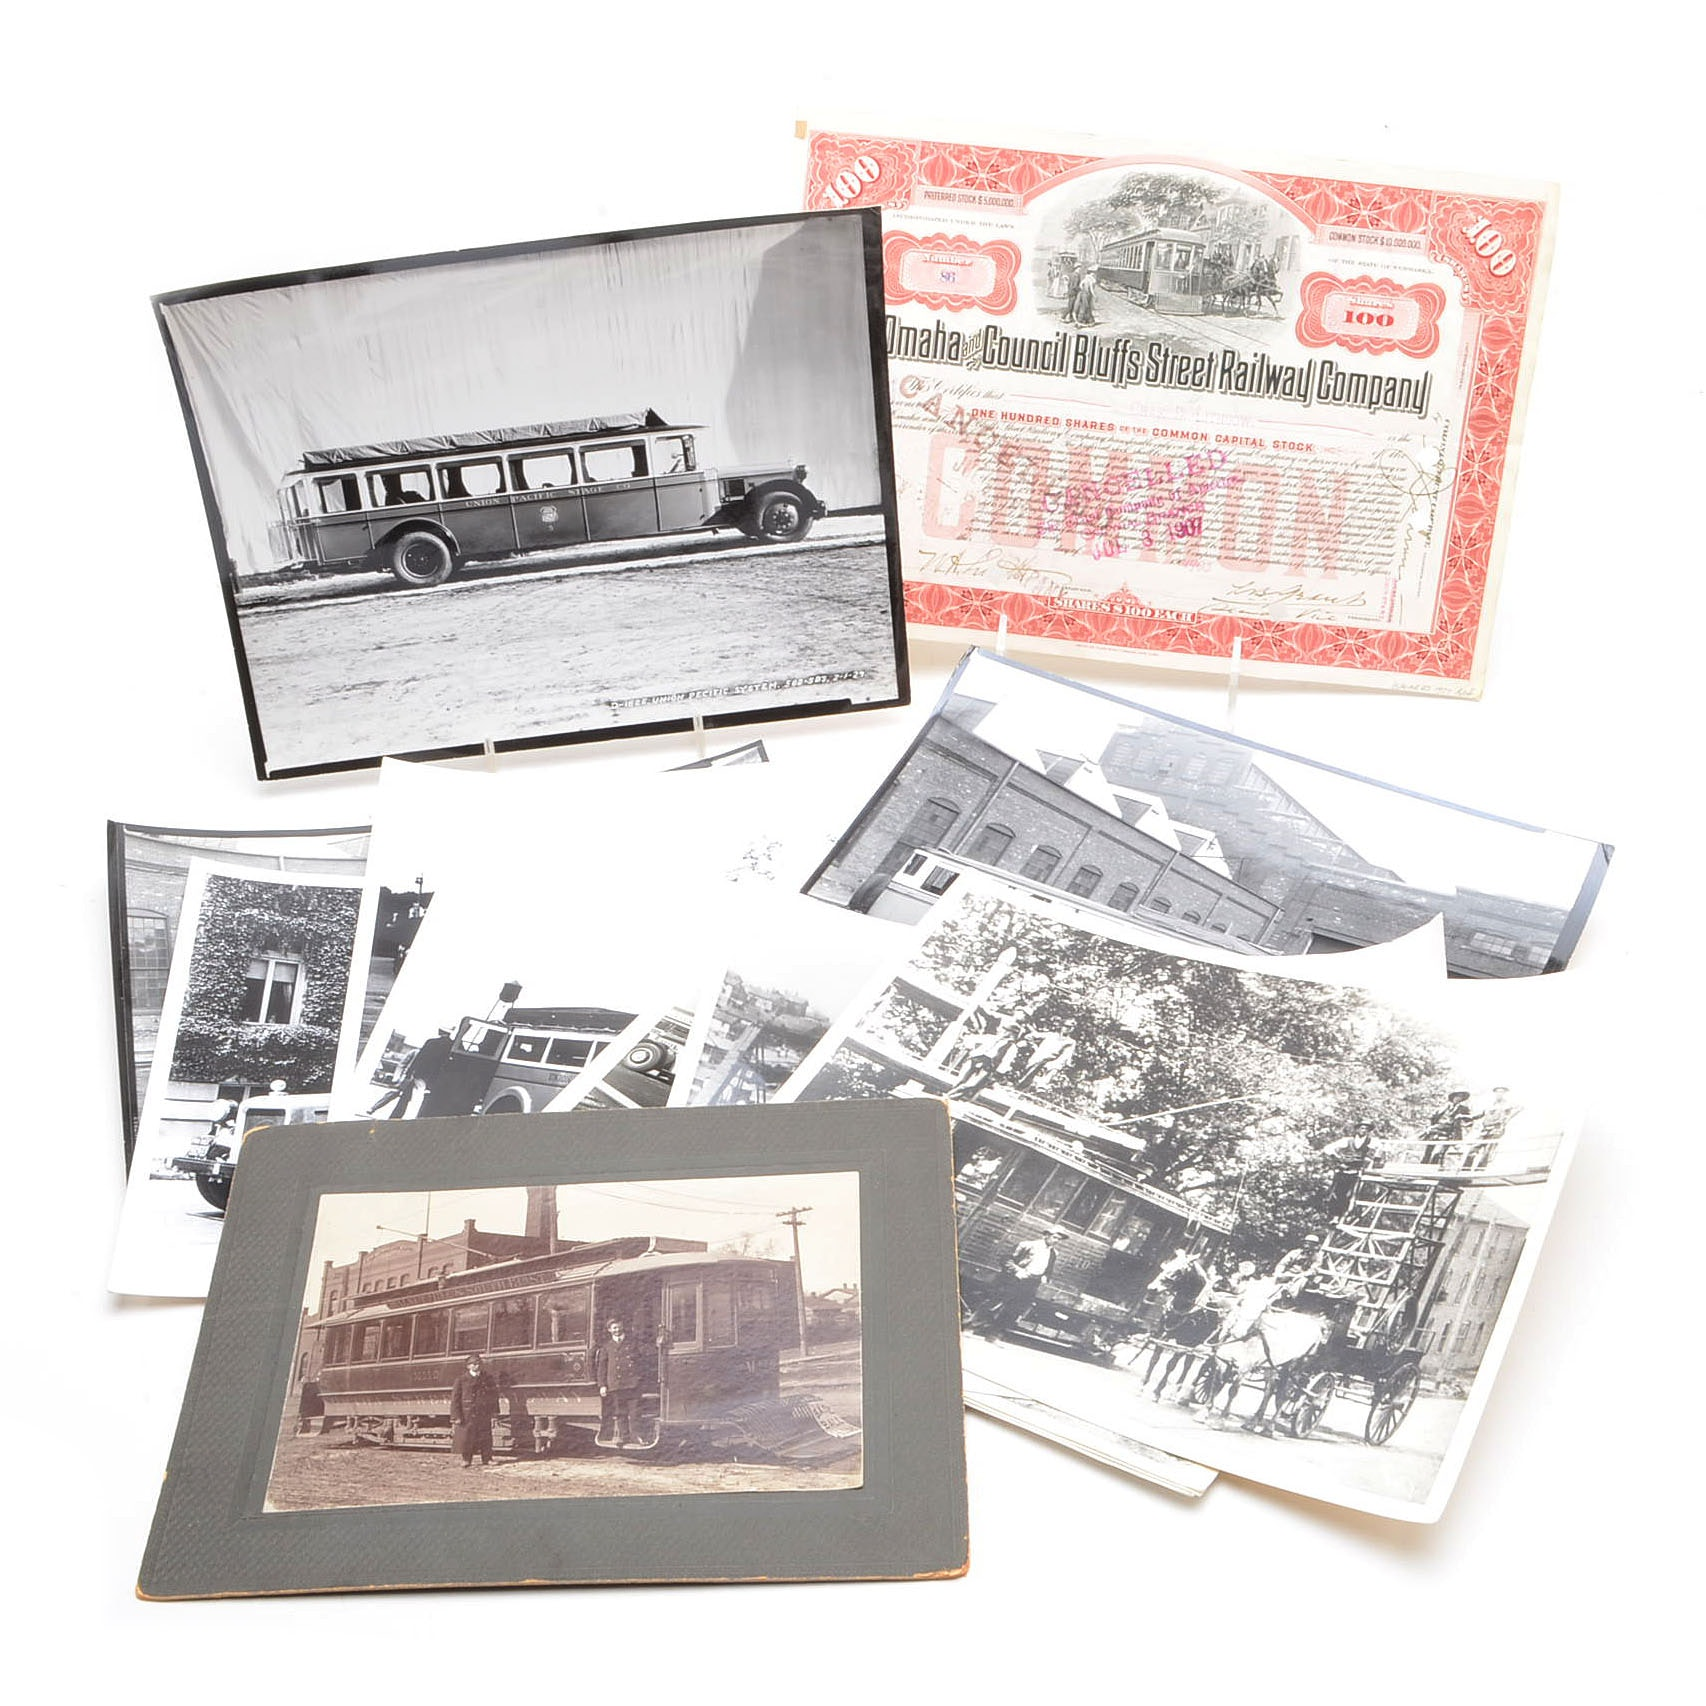 Antique Trolley Car and Bus Photographs With Stock Certificate